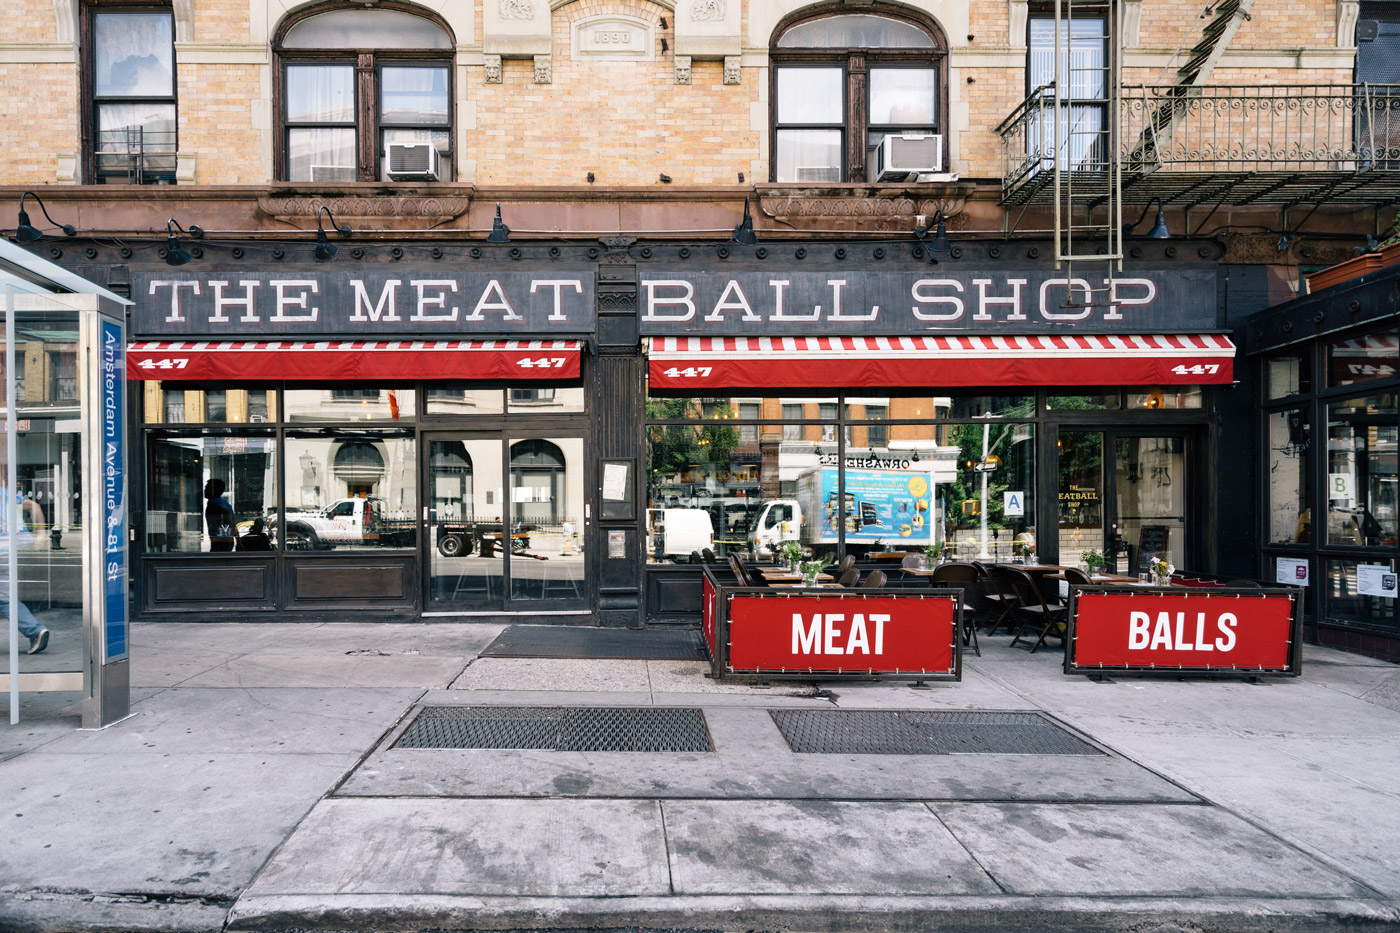 The Meat Ball Shop in the Upper West Side in Manhattan